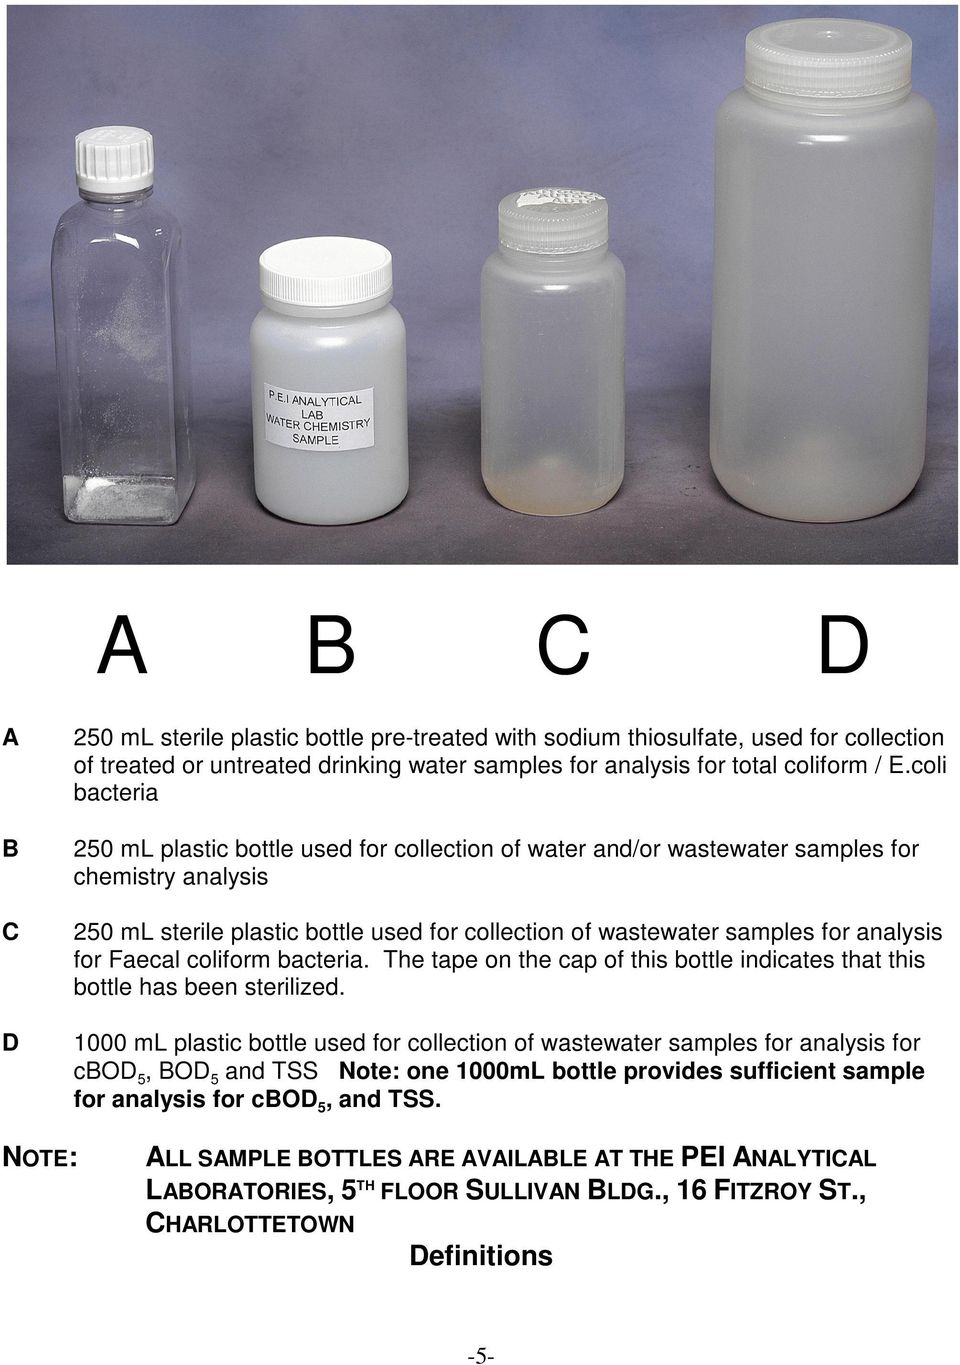 analysis for Faecal coliform bacteria. The tape on the cap of this bottle indicates that this bottle has been sterilized.